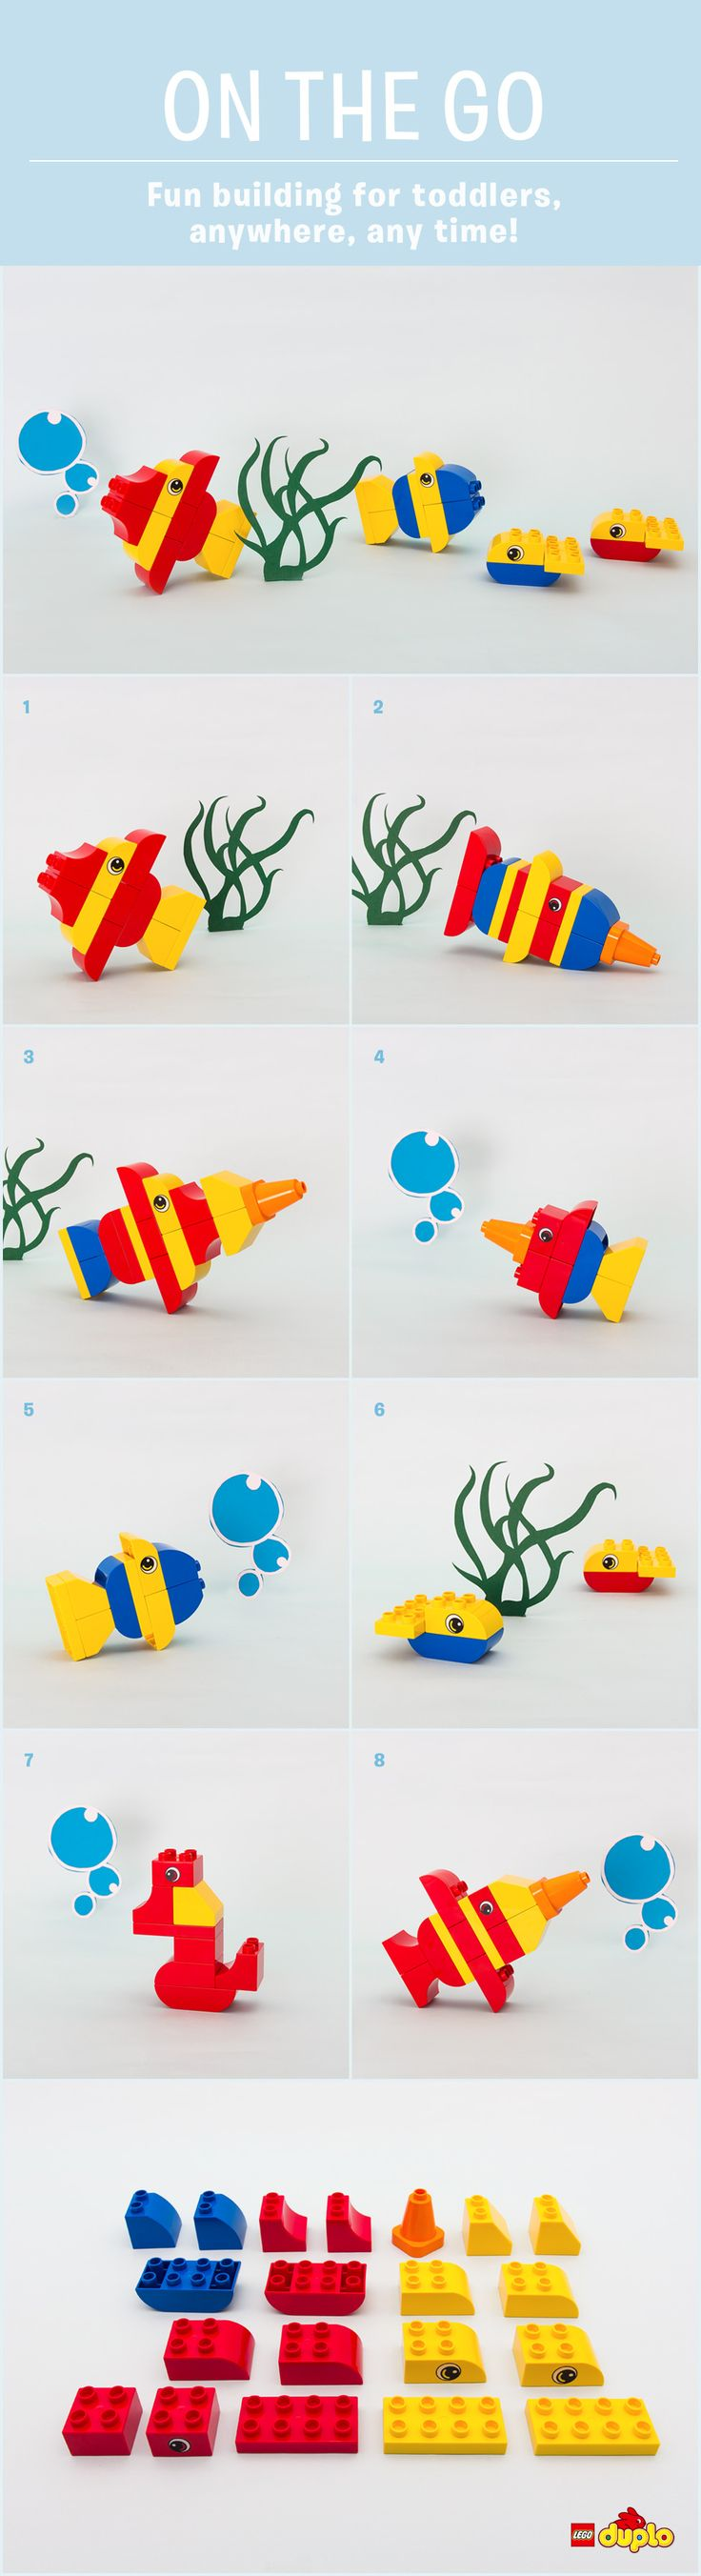 Find out how to build these amazing seahorses, swordfish, whales and more. All with 20 LEGO DUPLO bricks or less! http://www.lego.com/en-us/family/articles/on-the-go-deep-sea-safari-9fc5bf100d8849db8237537717600a63